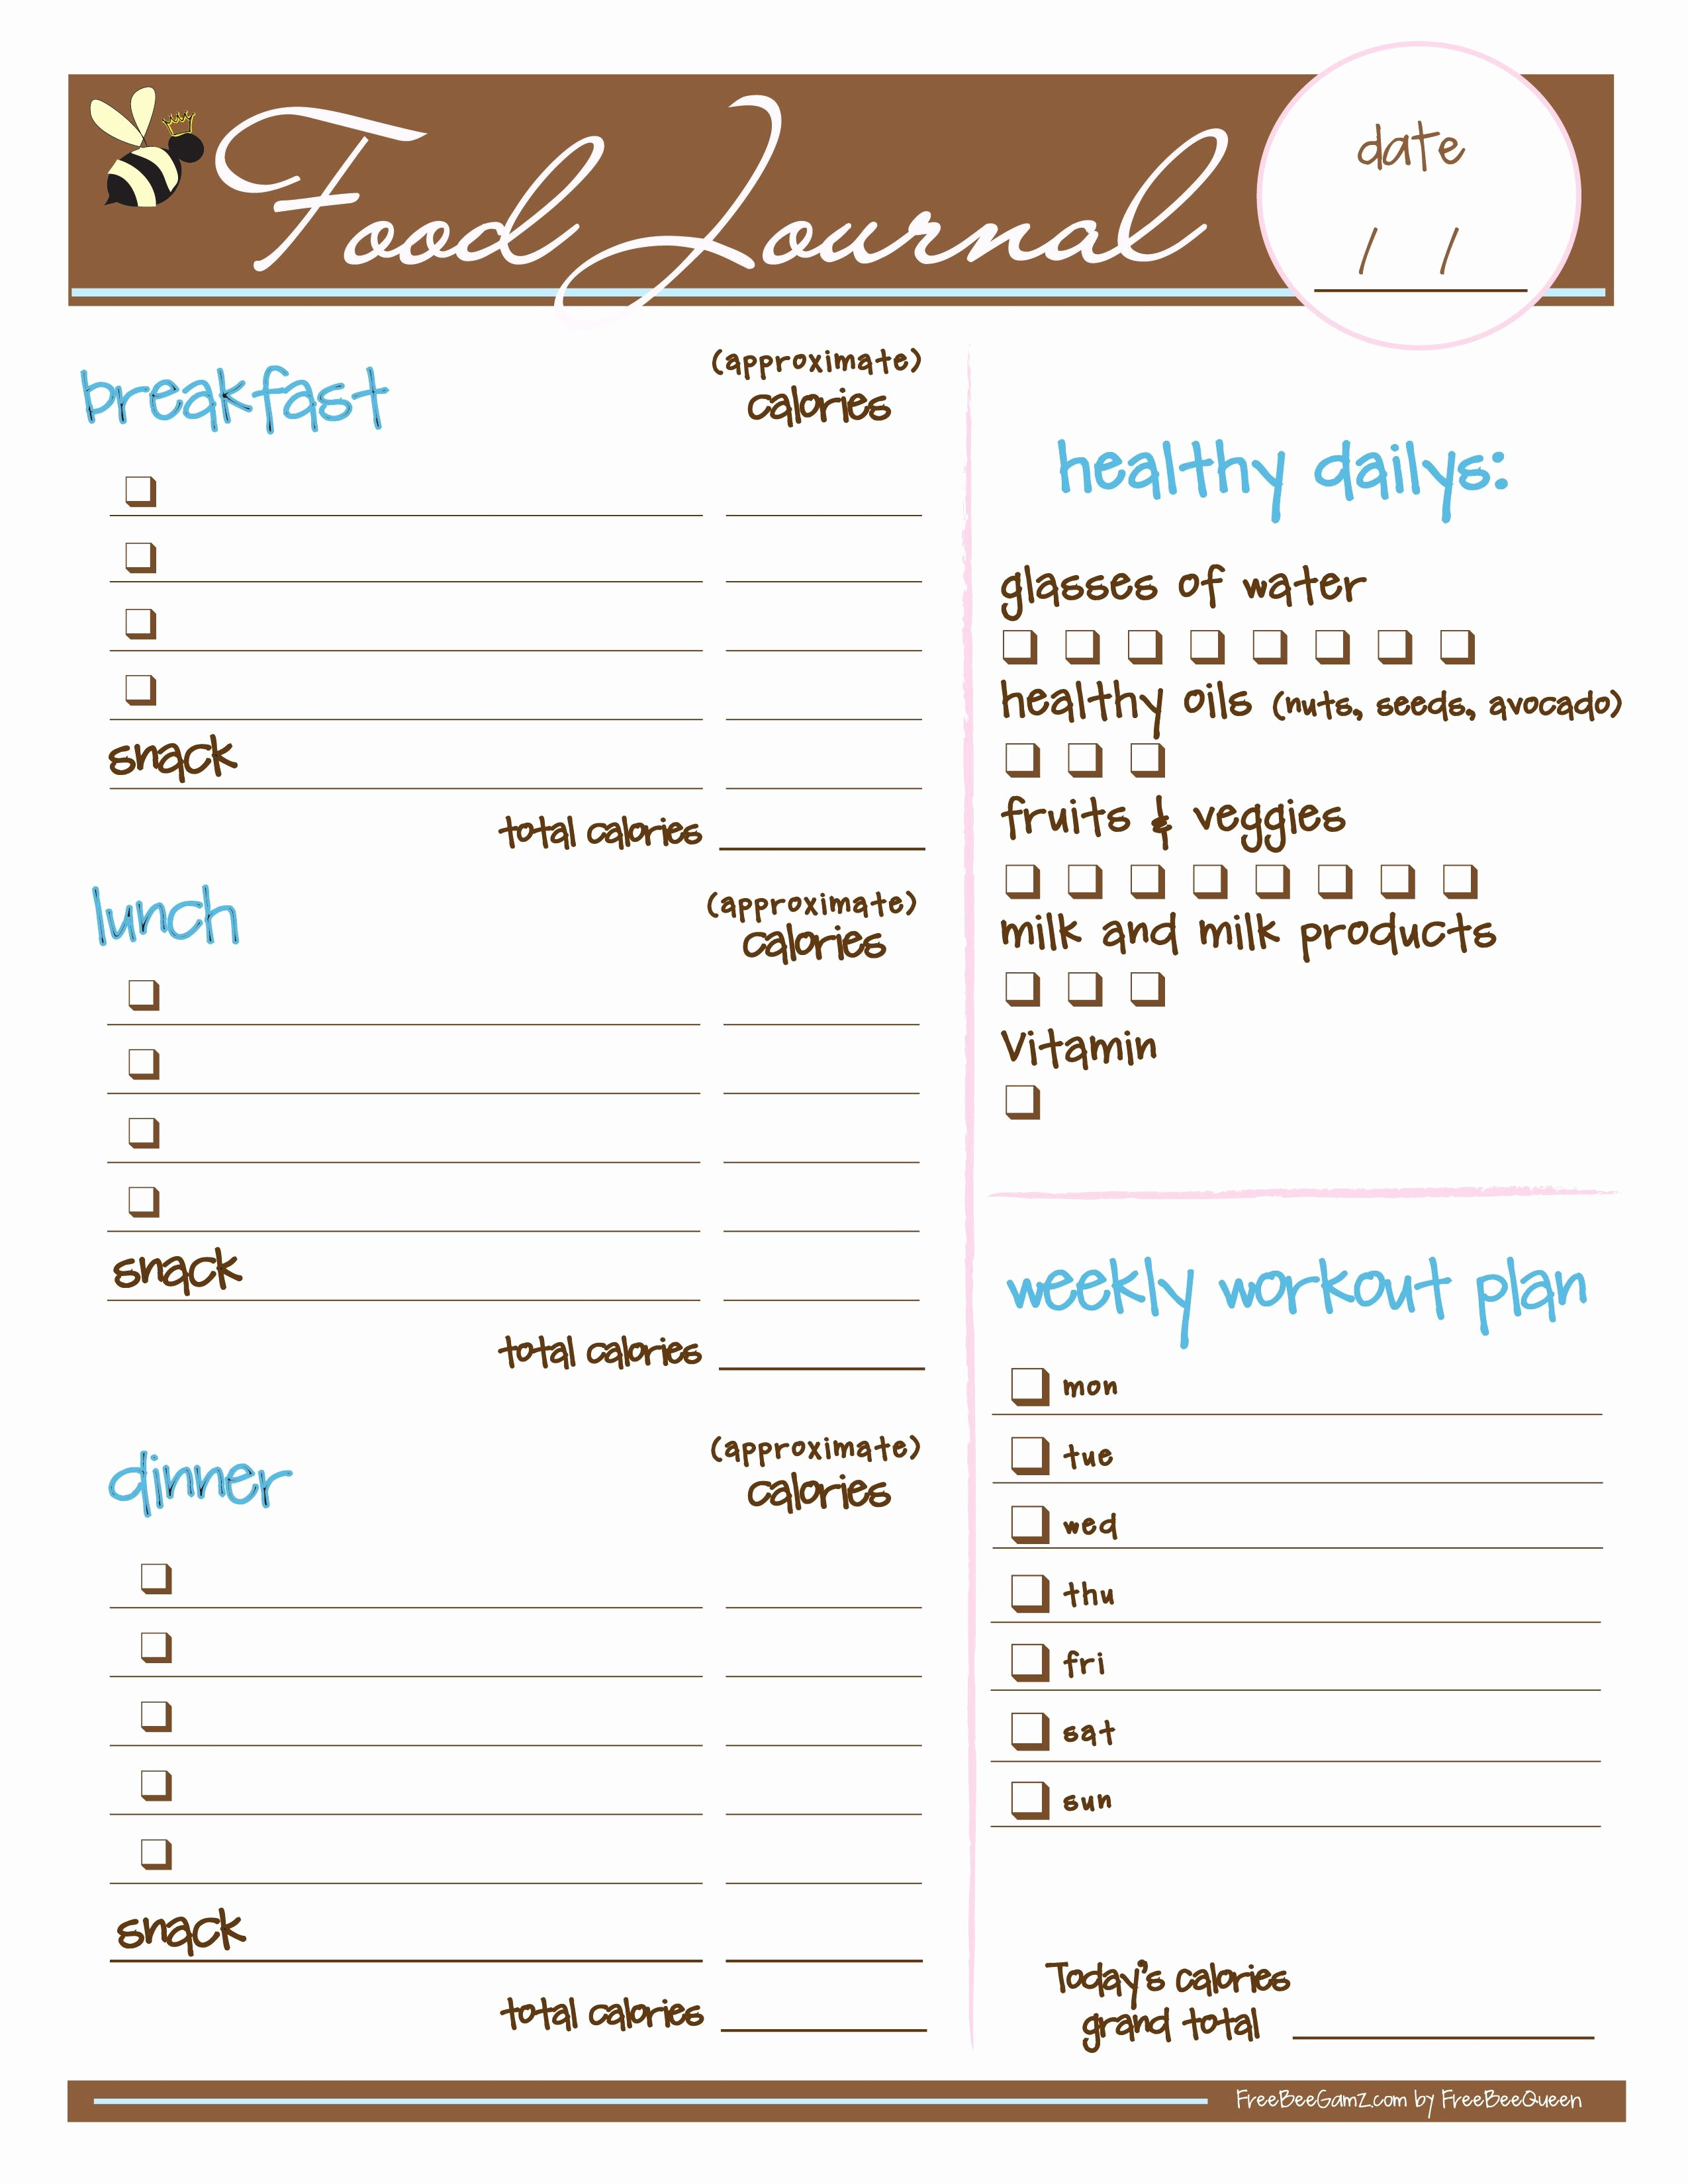 Best Food and Exercise Journal Awesome Free Food Journal I Love This I Just Printed It and It